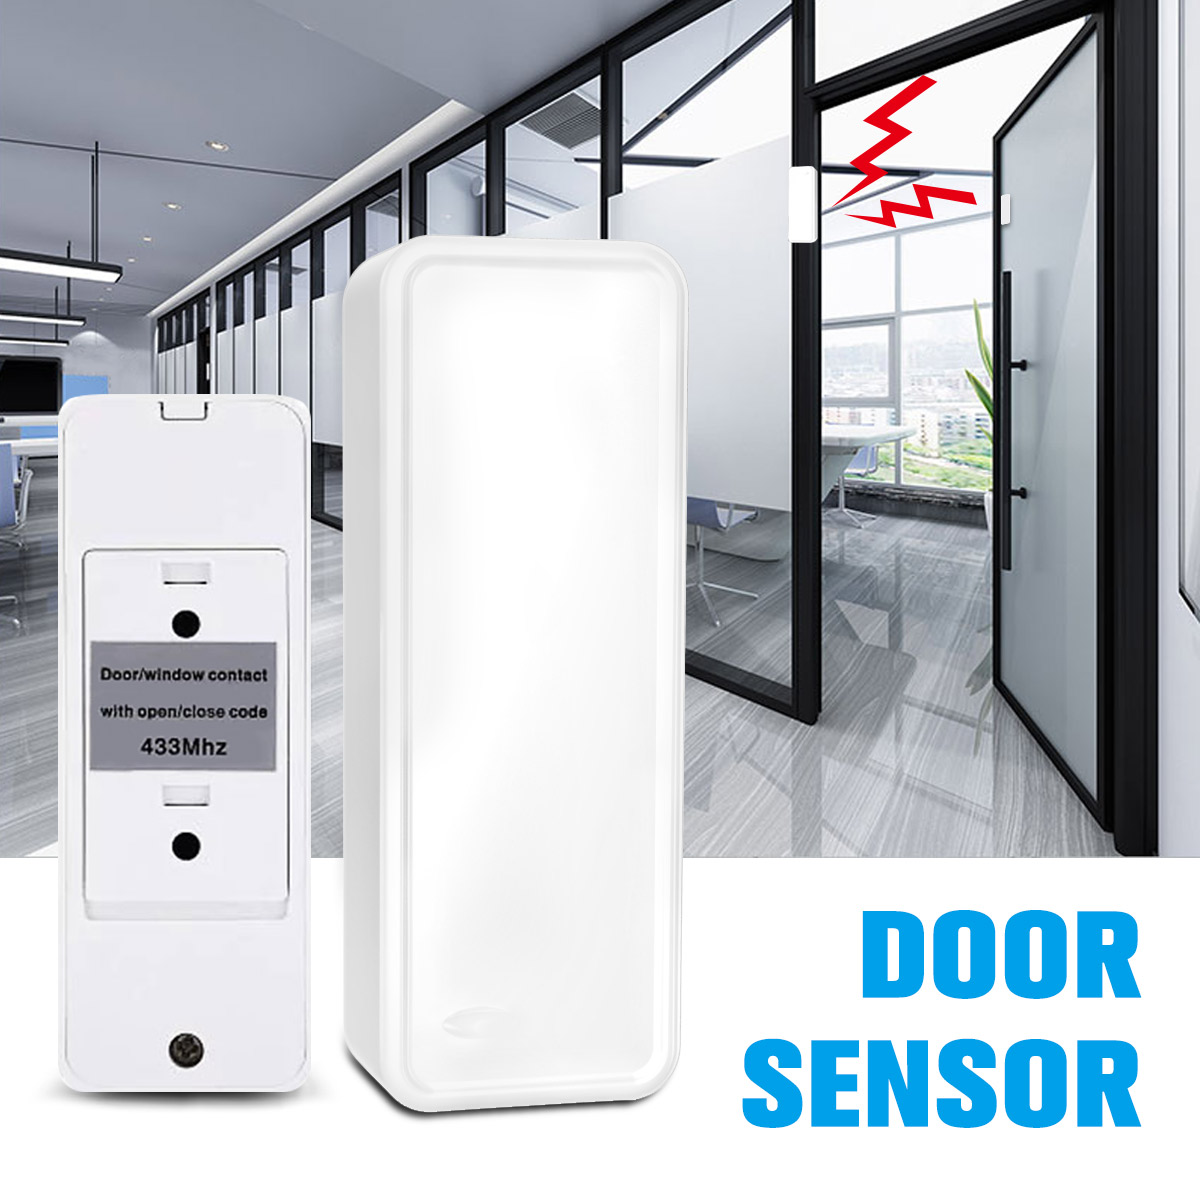 Wireless Door And Window Sensor Home Security Alarm System Magnetic Strip Office Sensor Two Series 120DB 433MHz